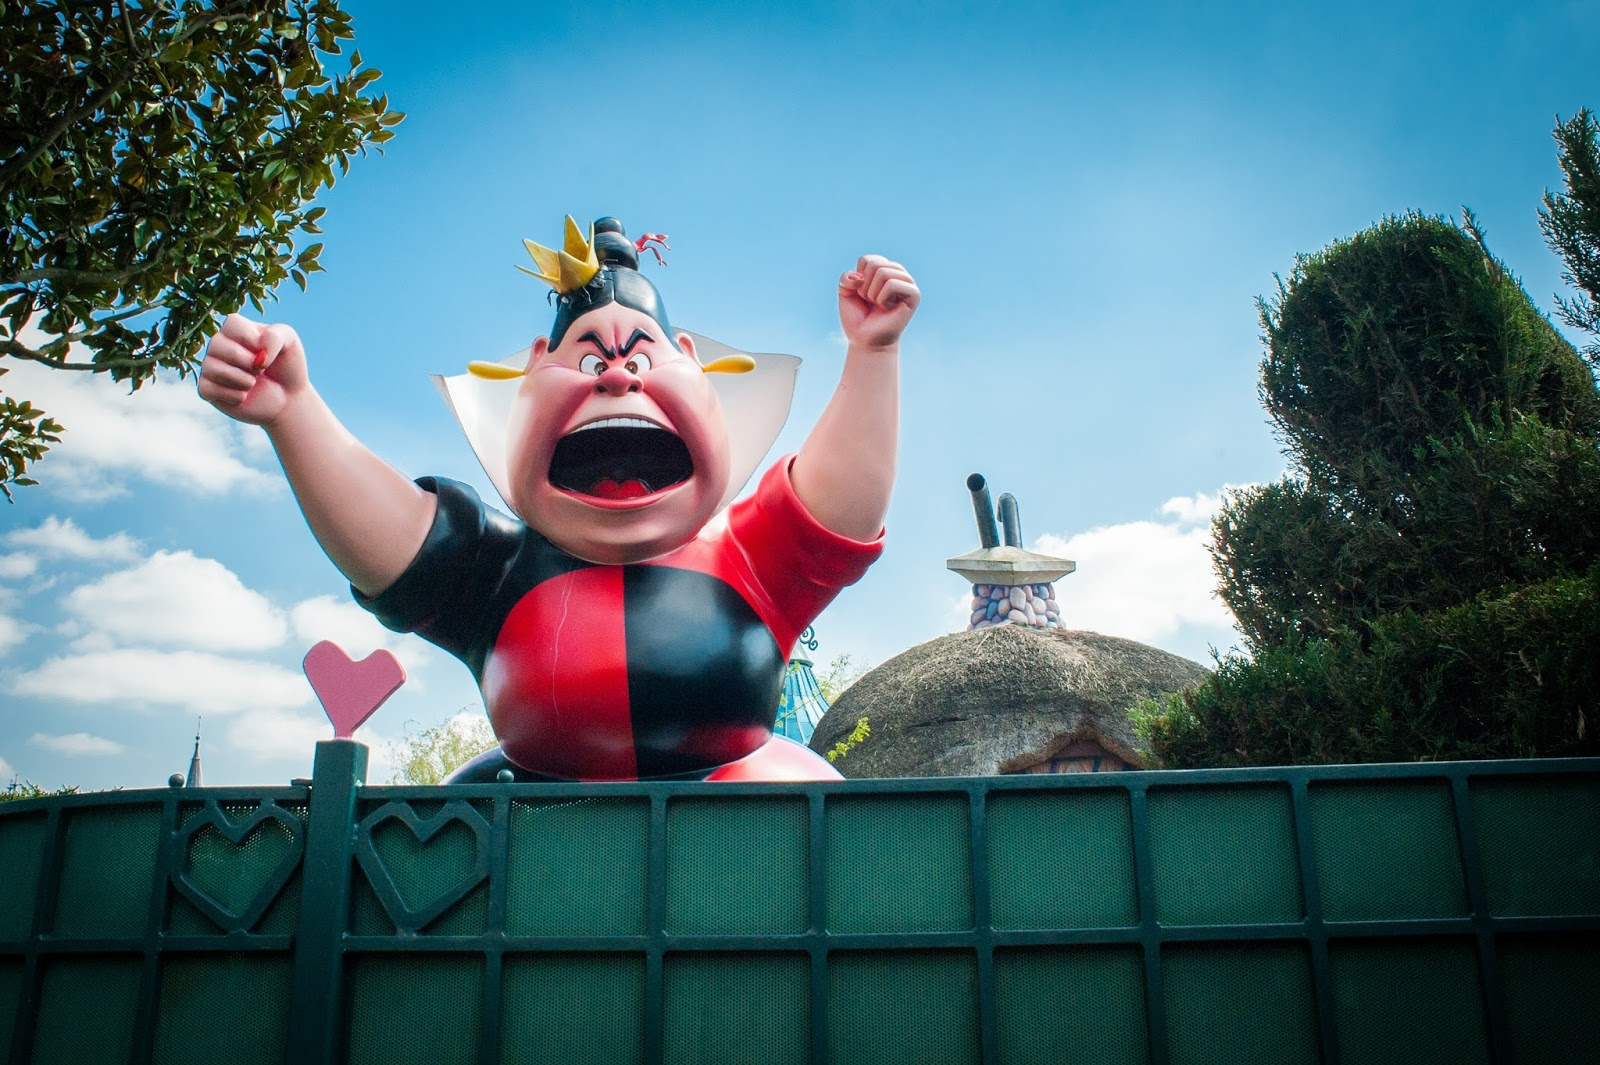 The Queen of Hearts with fists in the air at Disneyland Paris in Marne-la-Vallée Outside Paris